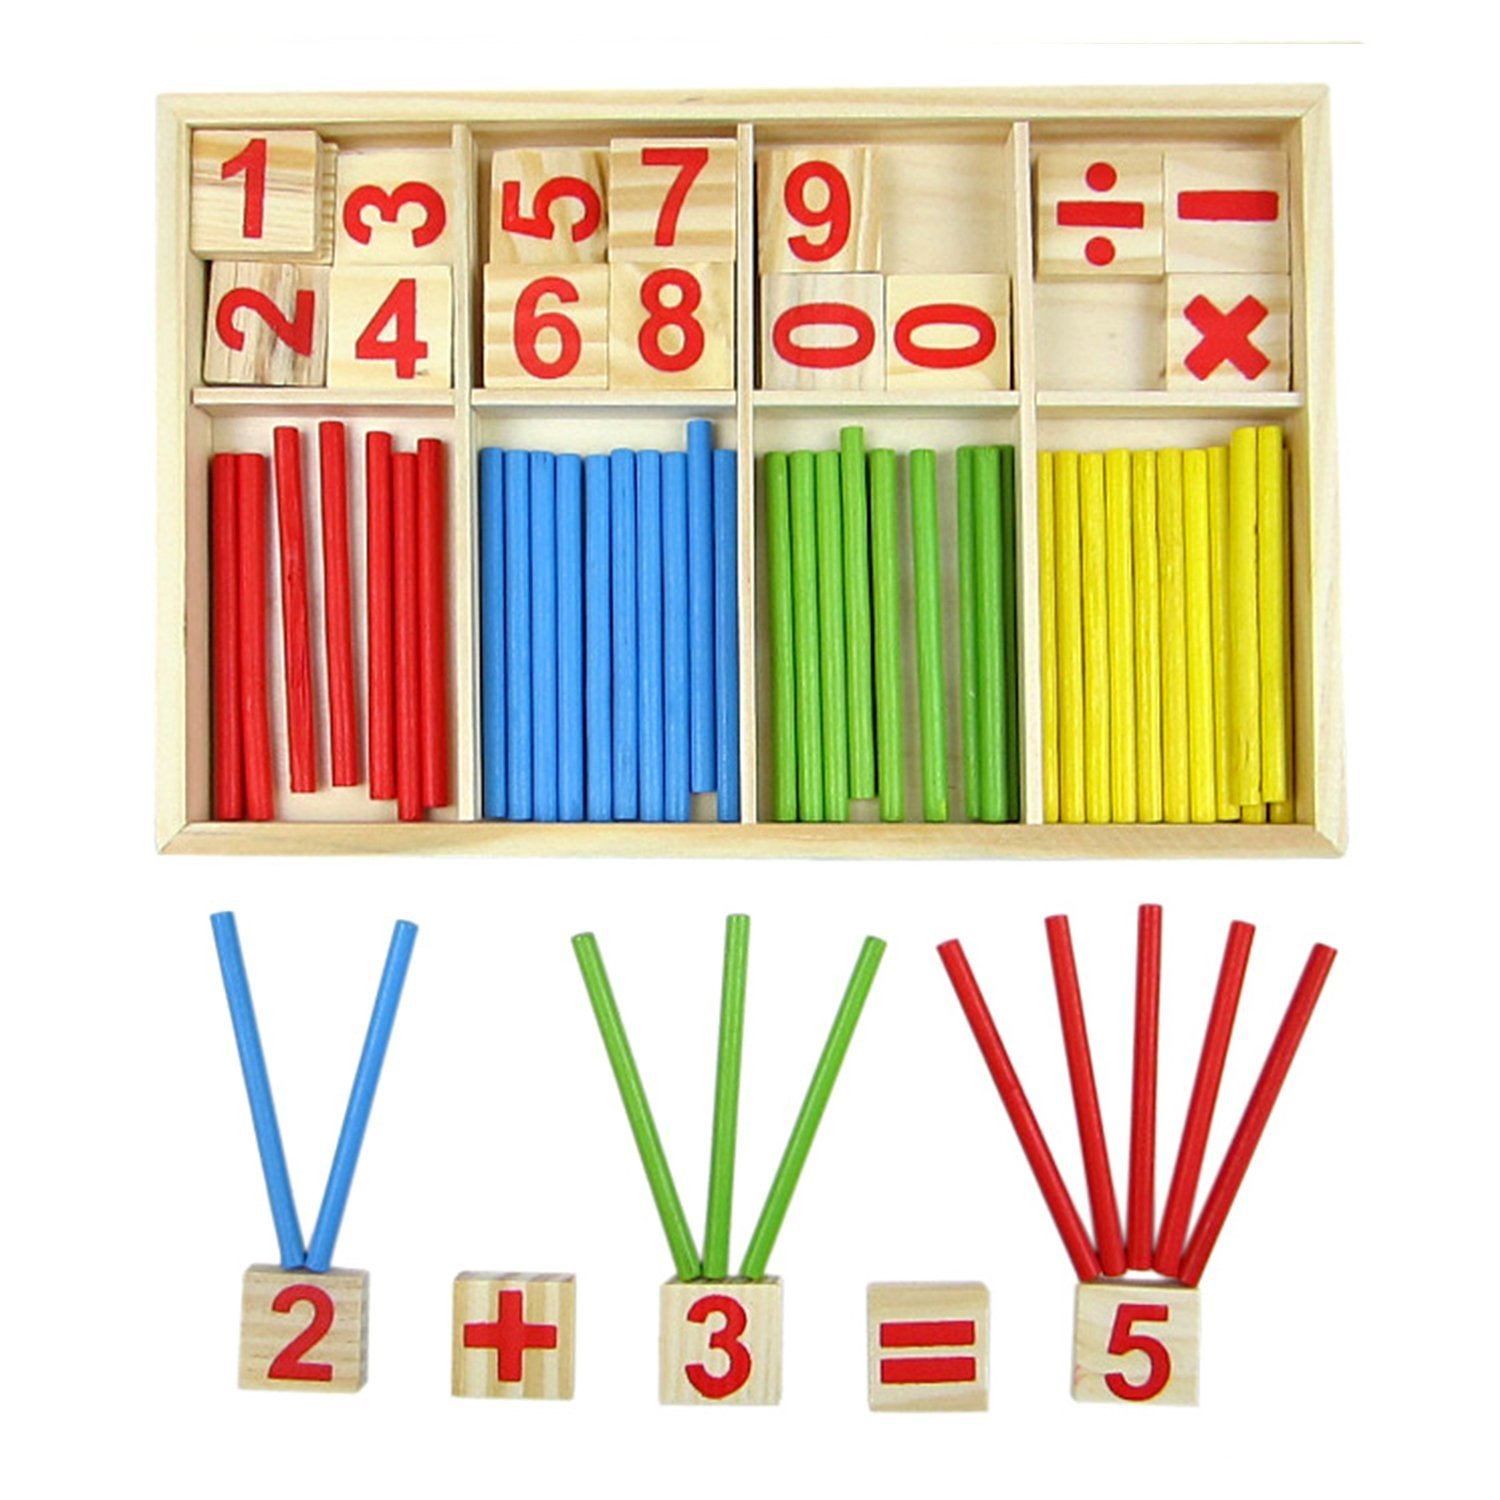 Baztoy Kids Preschool Counting Toys Wooden Number Cards and Counting Rods, Wood Counting Sticks Math Tools Preschool Toys, Montessori Mathematics Learning Educational Toys for Kids - 4 Colors in Box